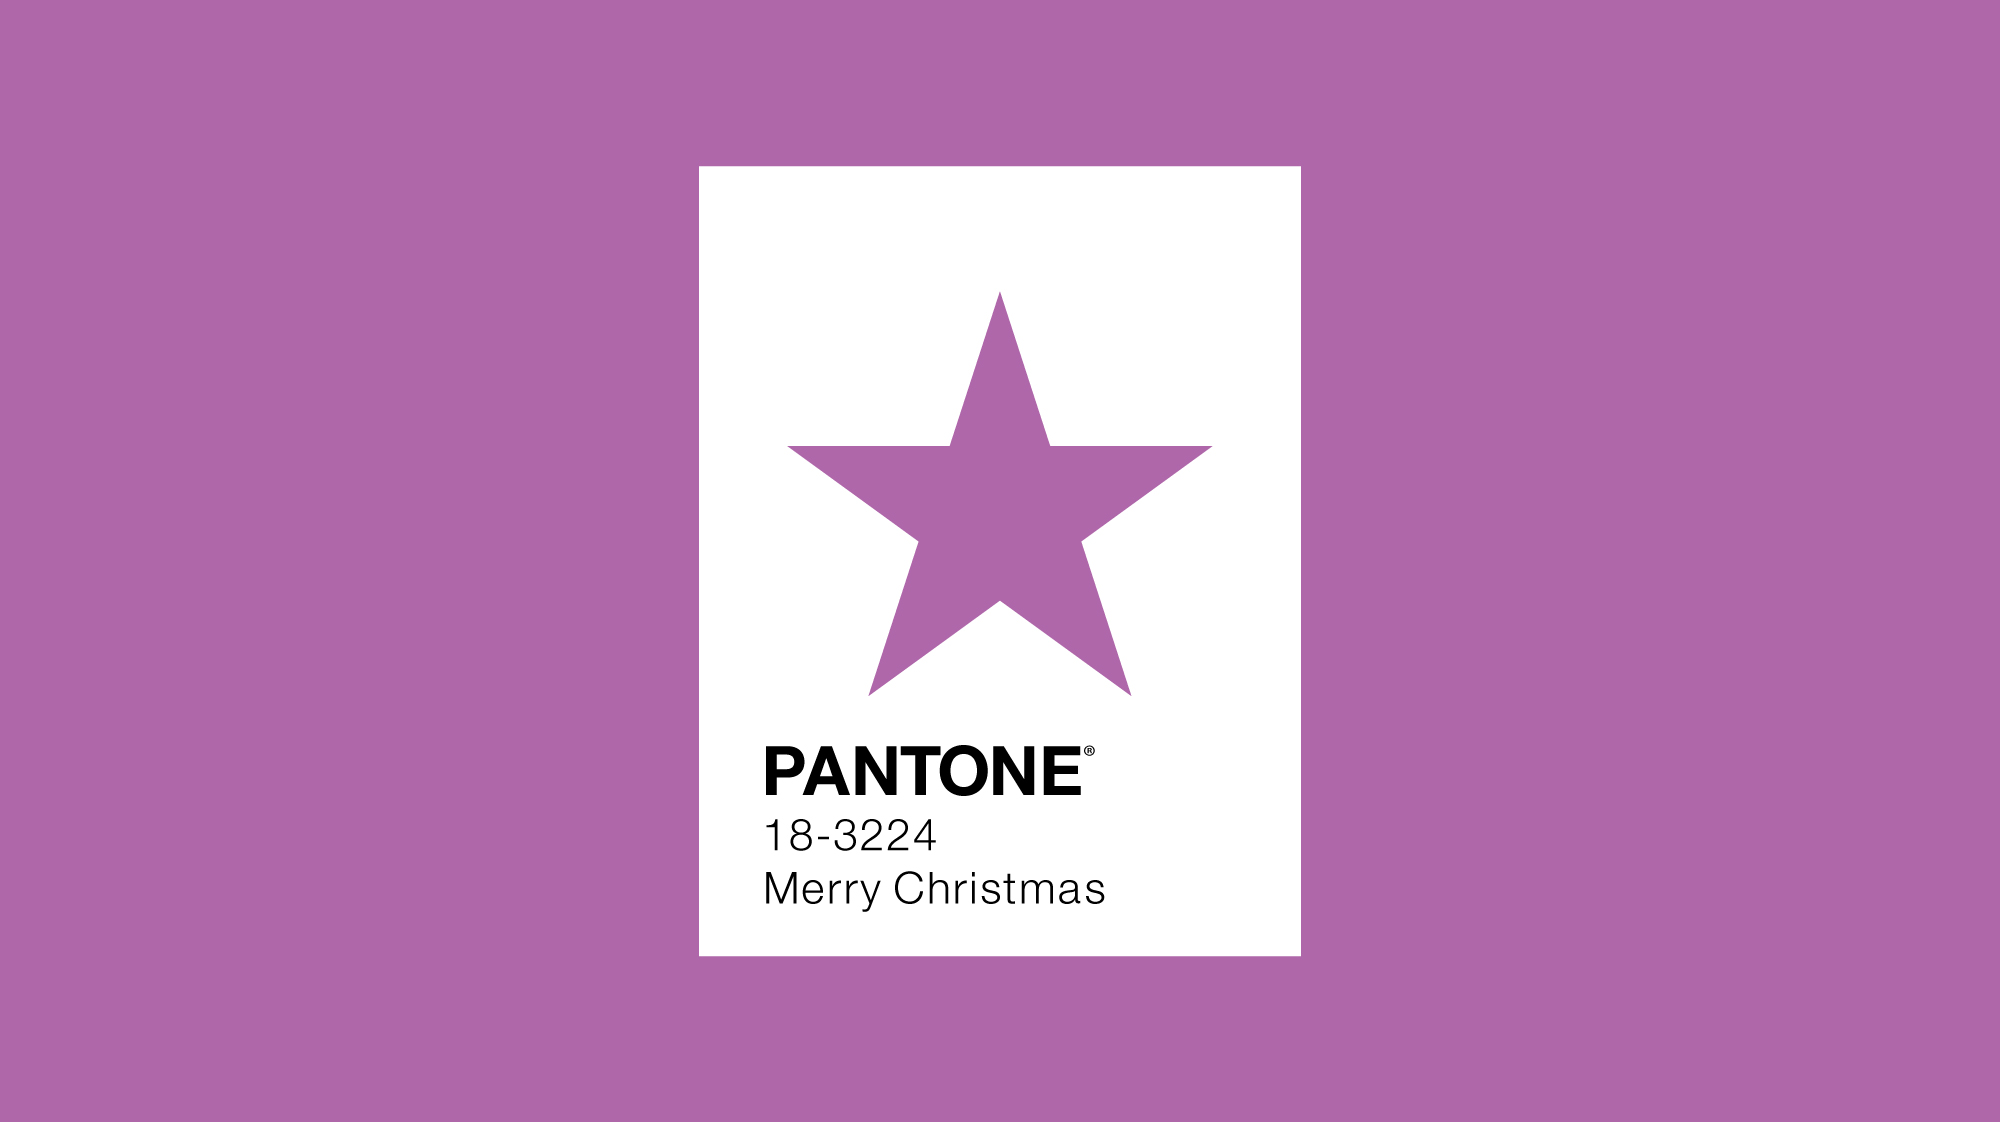 Pantone colour of the year 2014 minimal design with star